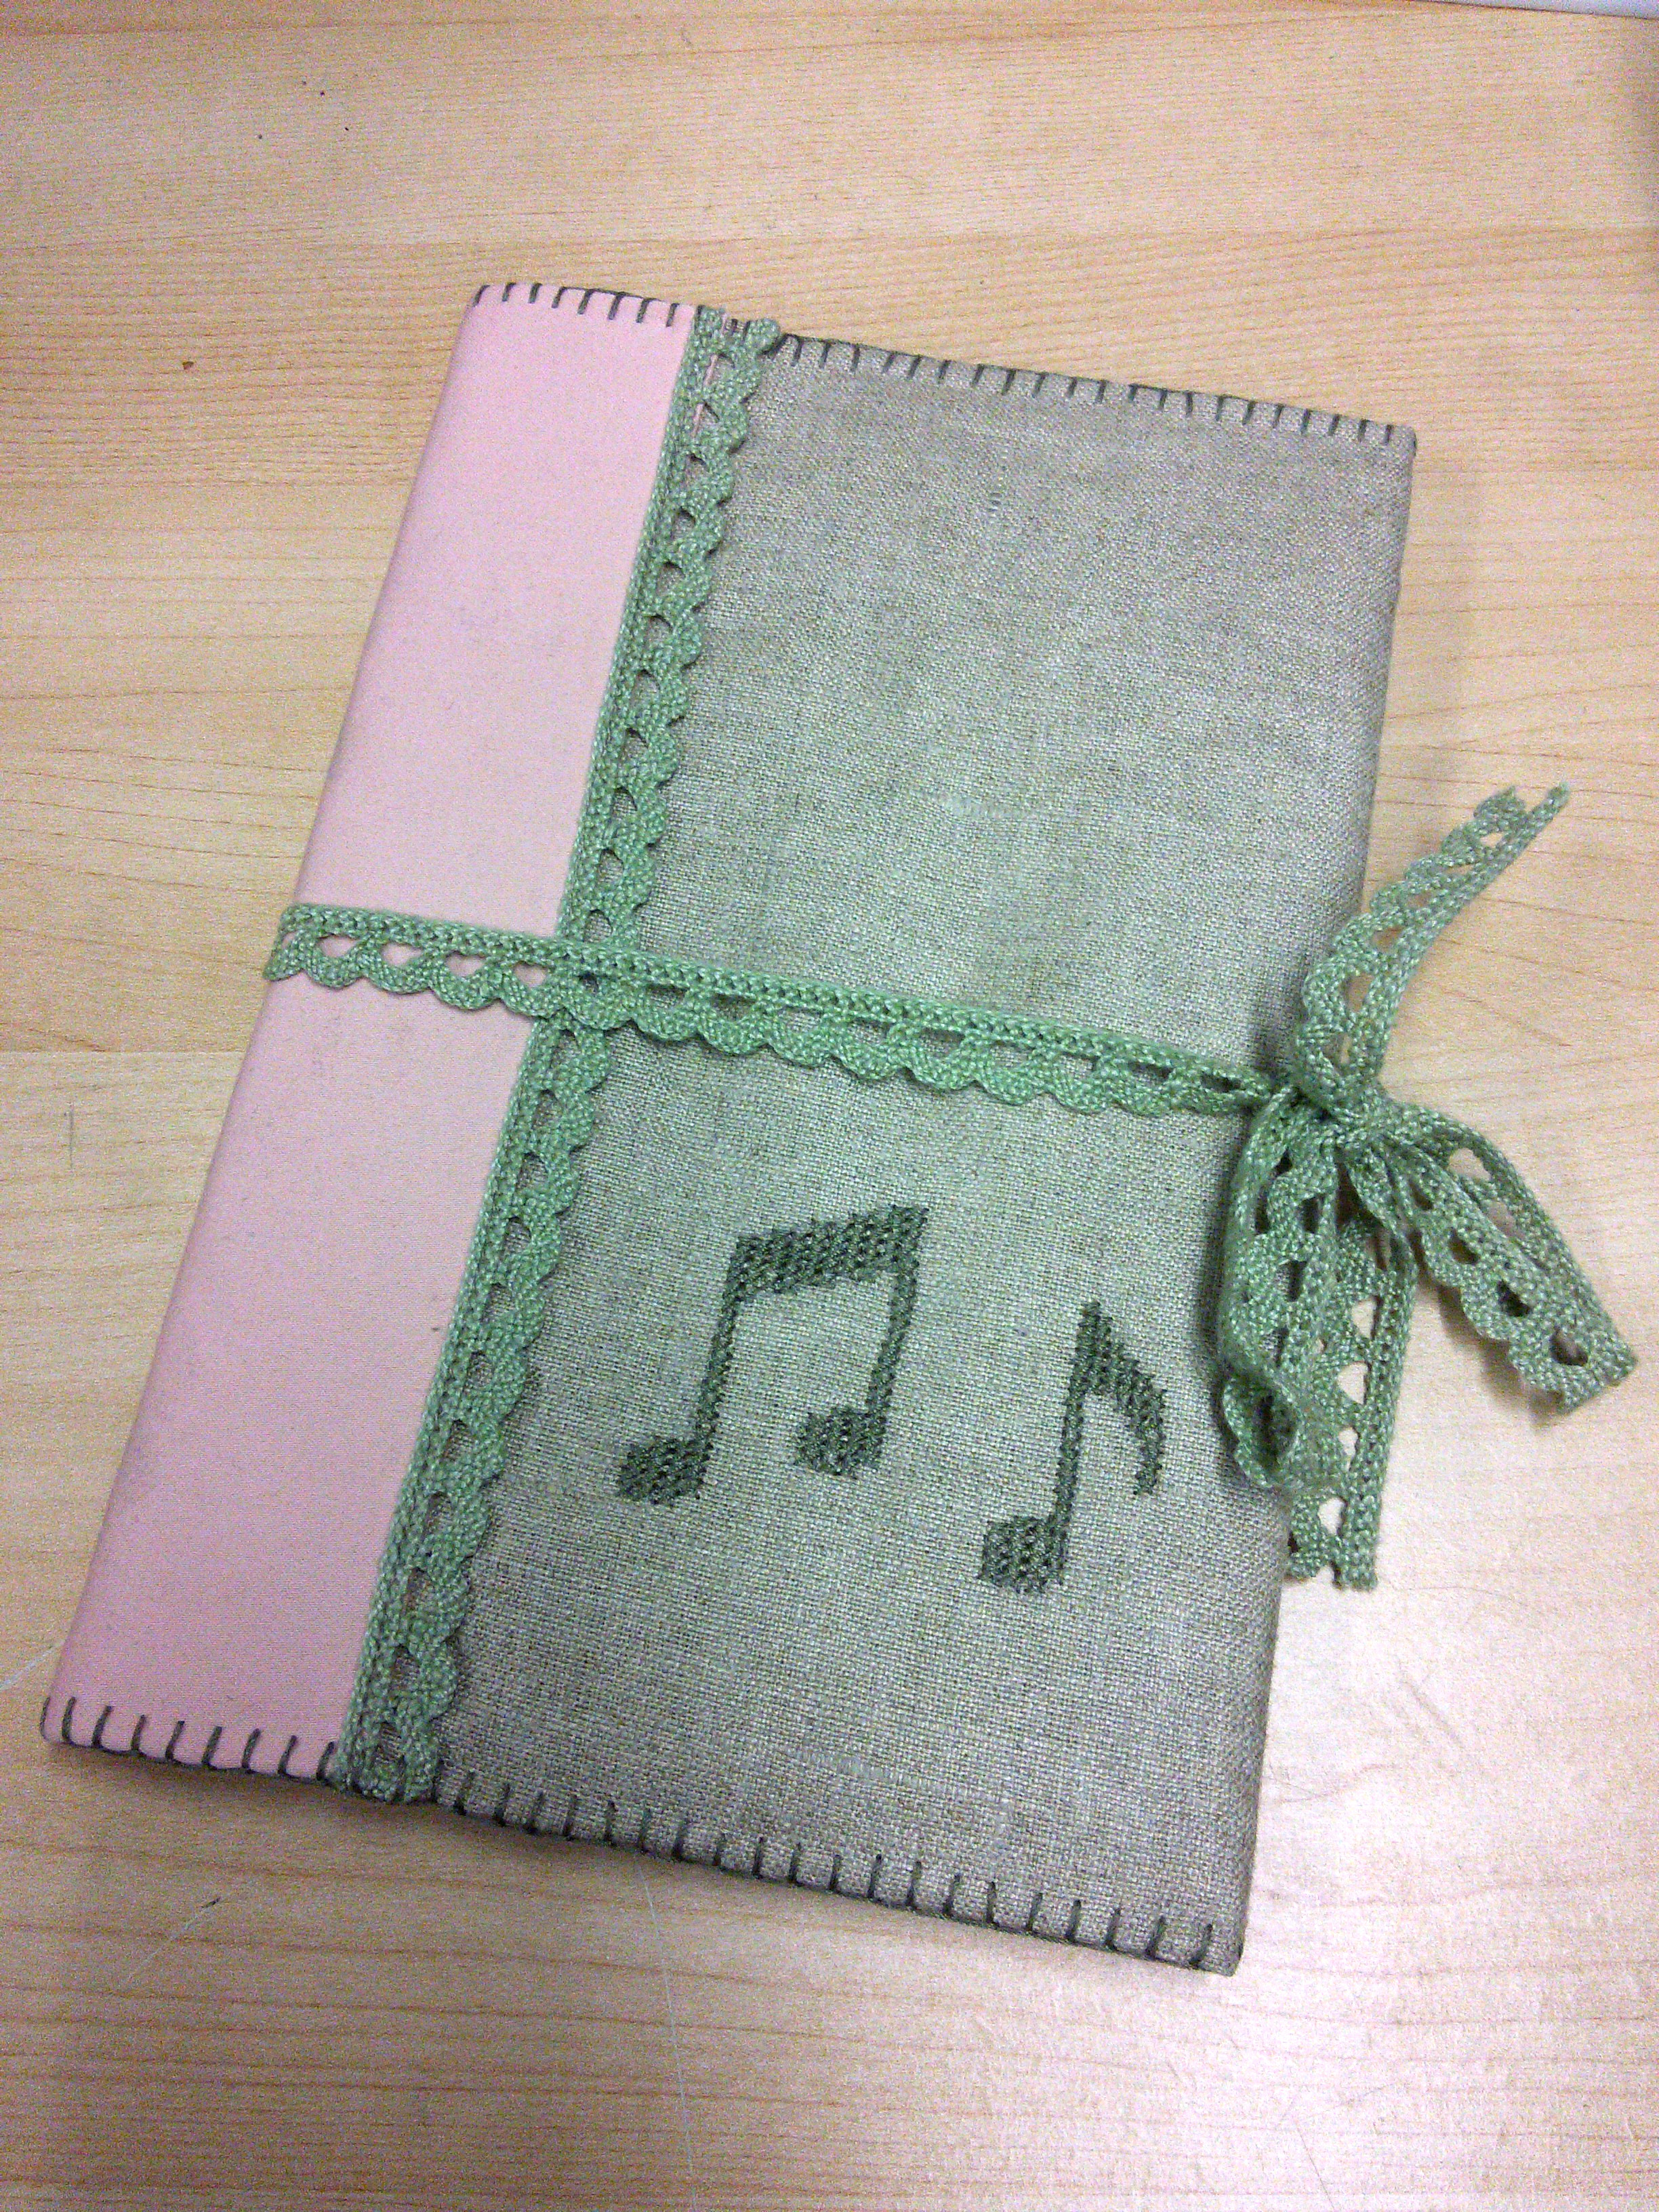 A photo of my songbook's cover, closed with a lacy ribbon tied around it.